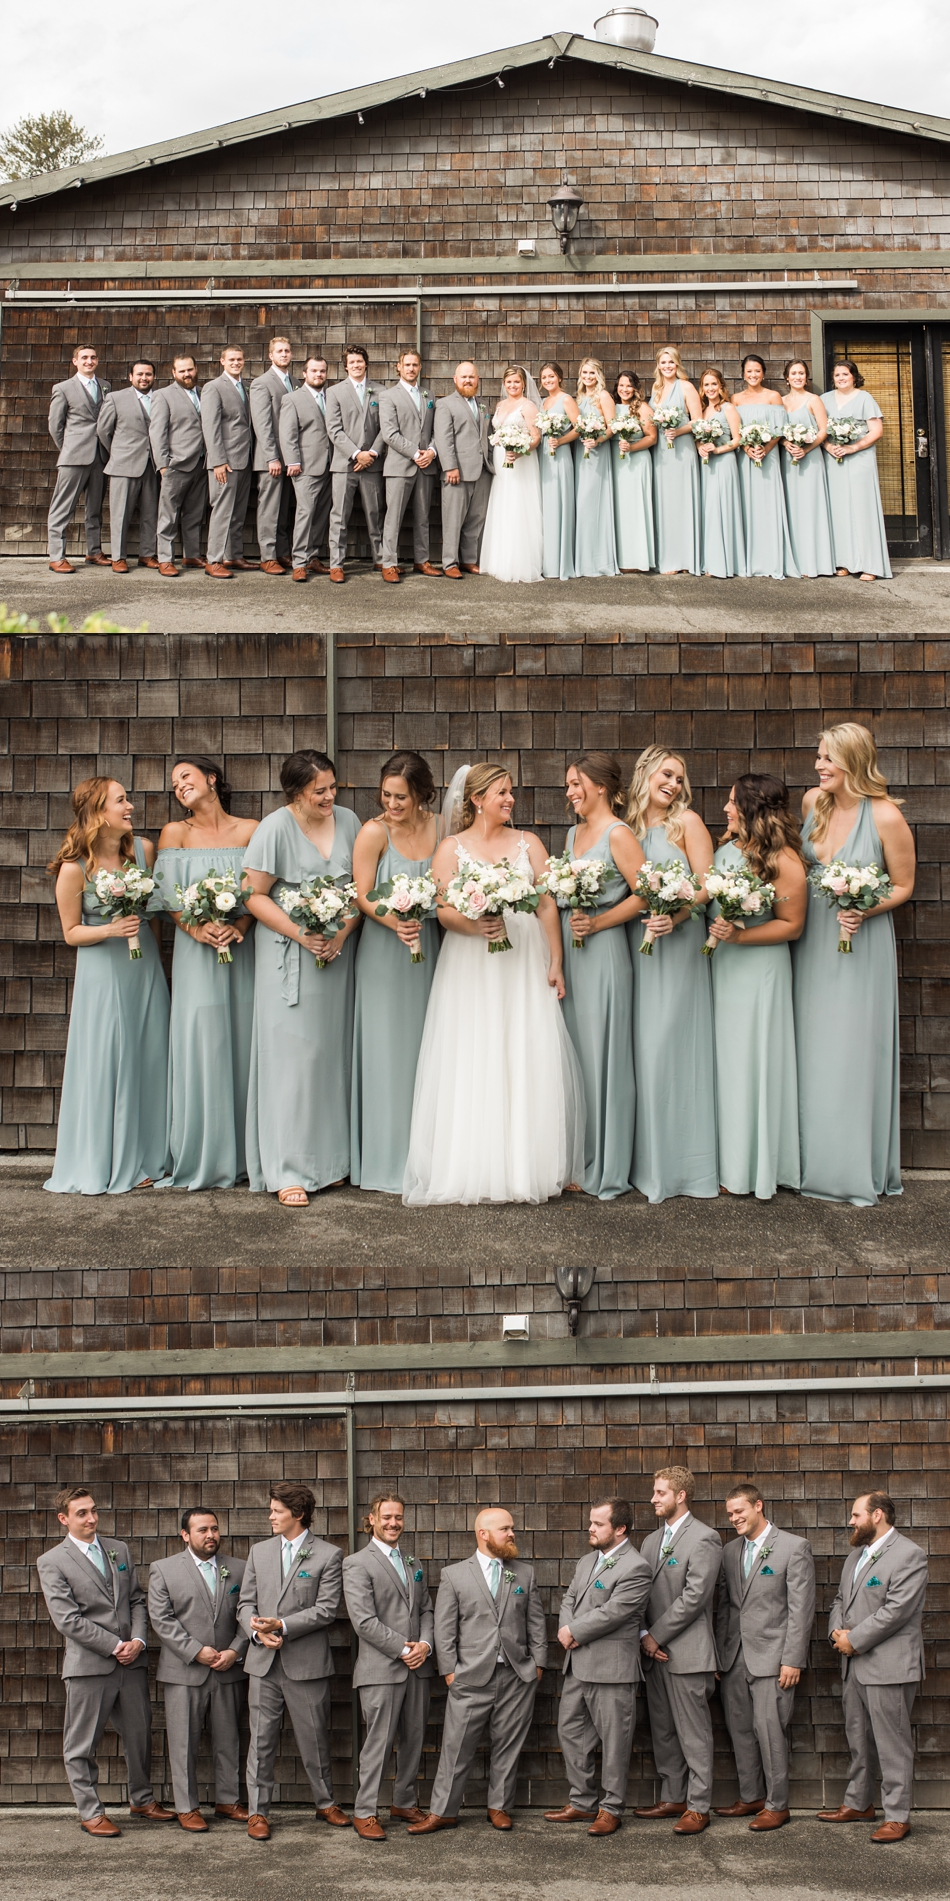 Photo of bridal party at a Hidden Meadows Farms wedding in Snohomish, a rustic yet elegant wedding venue near Seattle.   Joanna Monger Photography